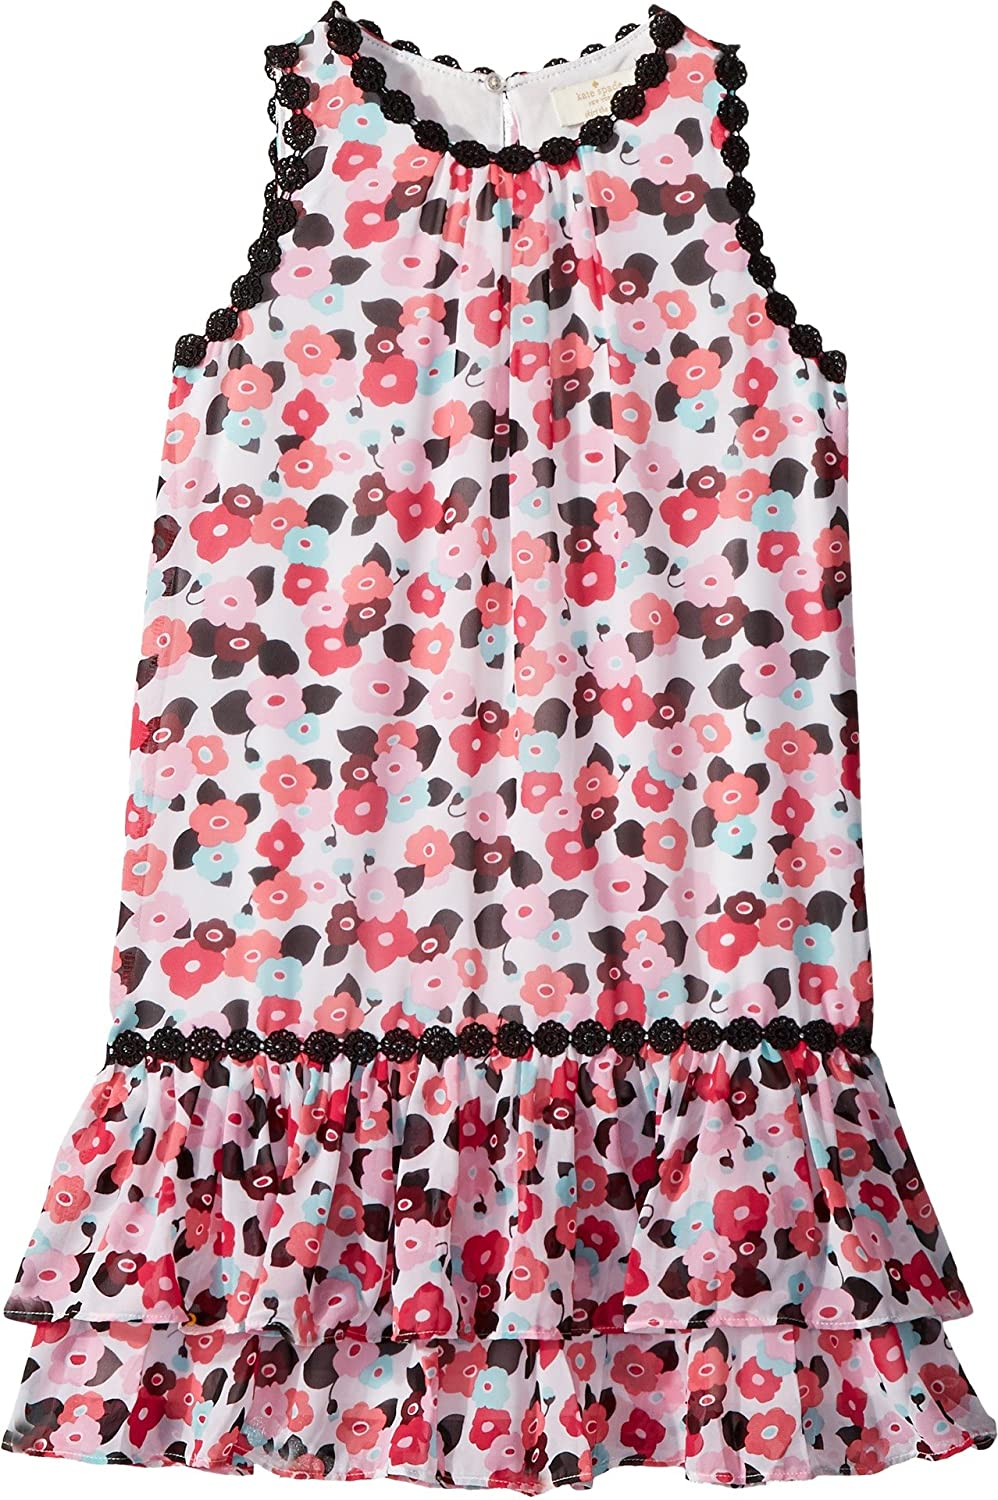 290fe4d9d1977 She'll be party ready in this fun-loving Kate Spade New York Kids® Blooming  Floral Dress. Floral, jewel neck shift dress. Relaxed fit with drop waist  ...